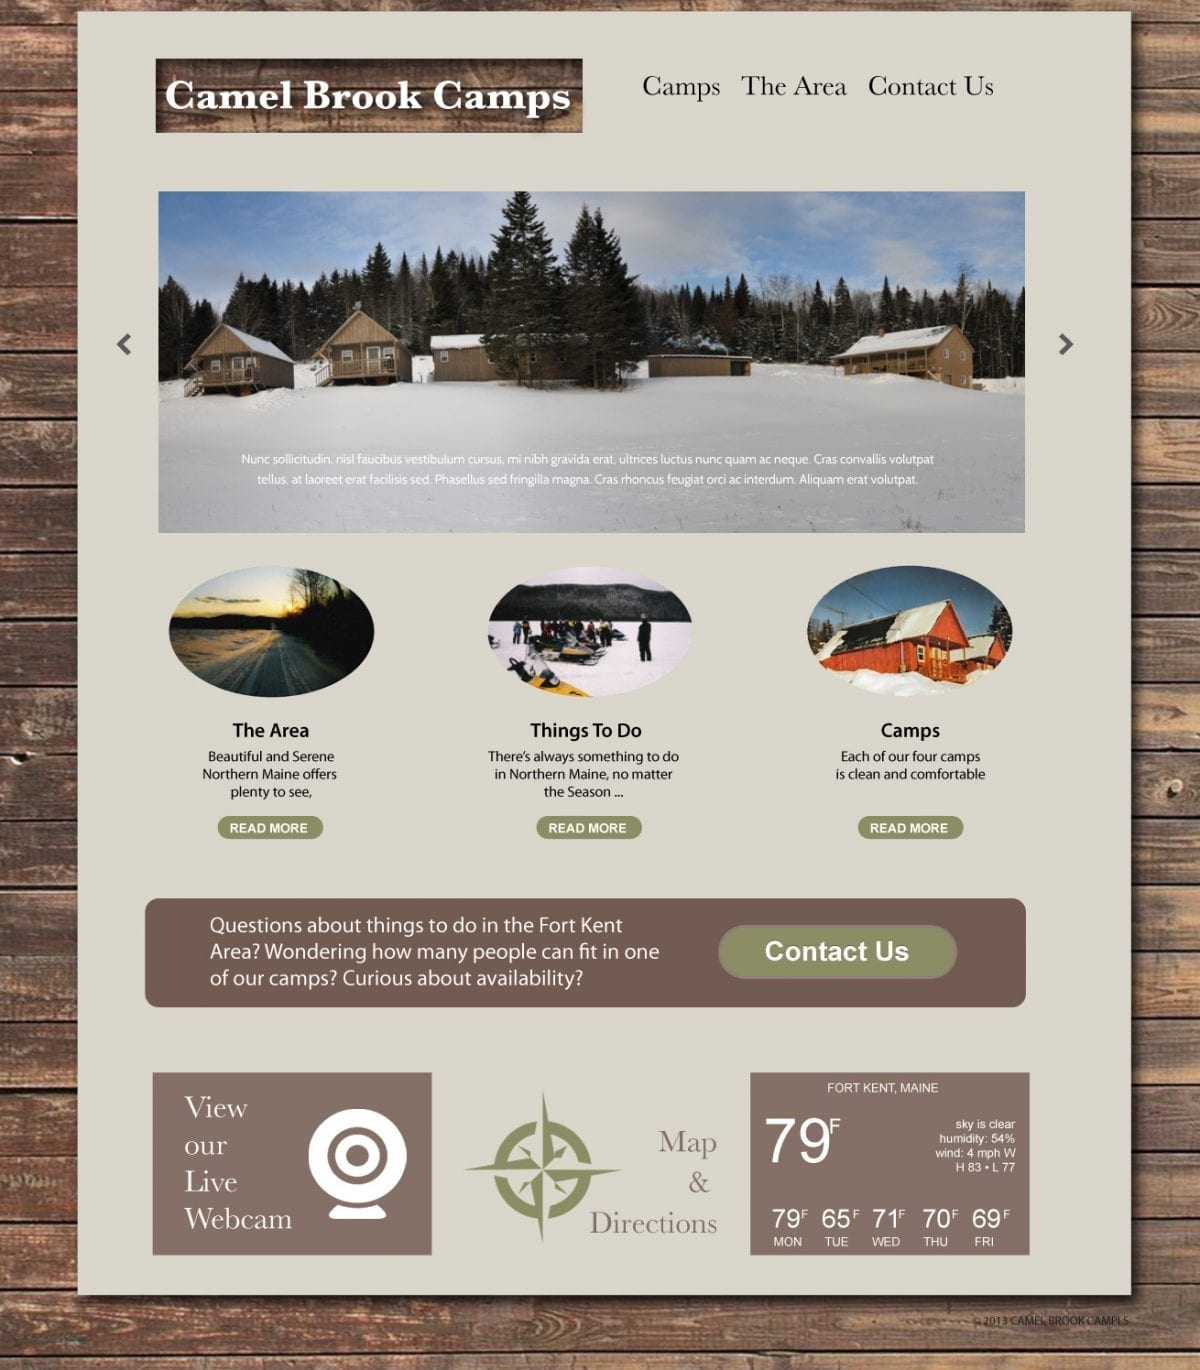 New Site Launch: Camel Brook Camps